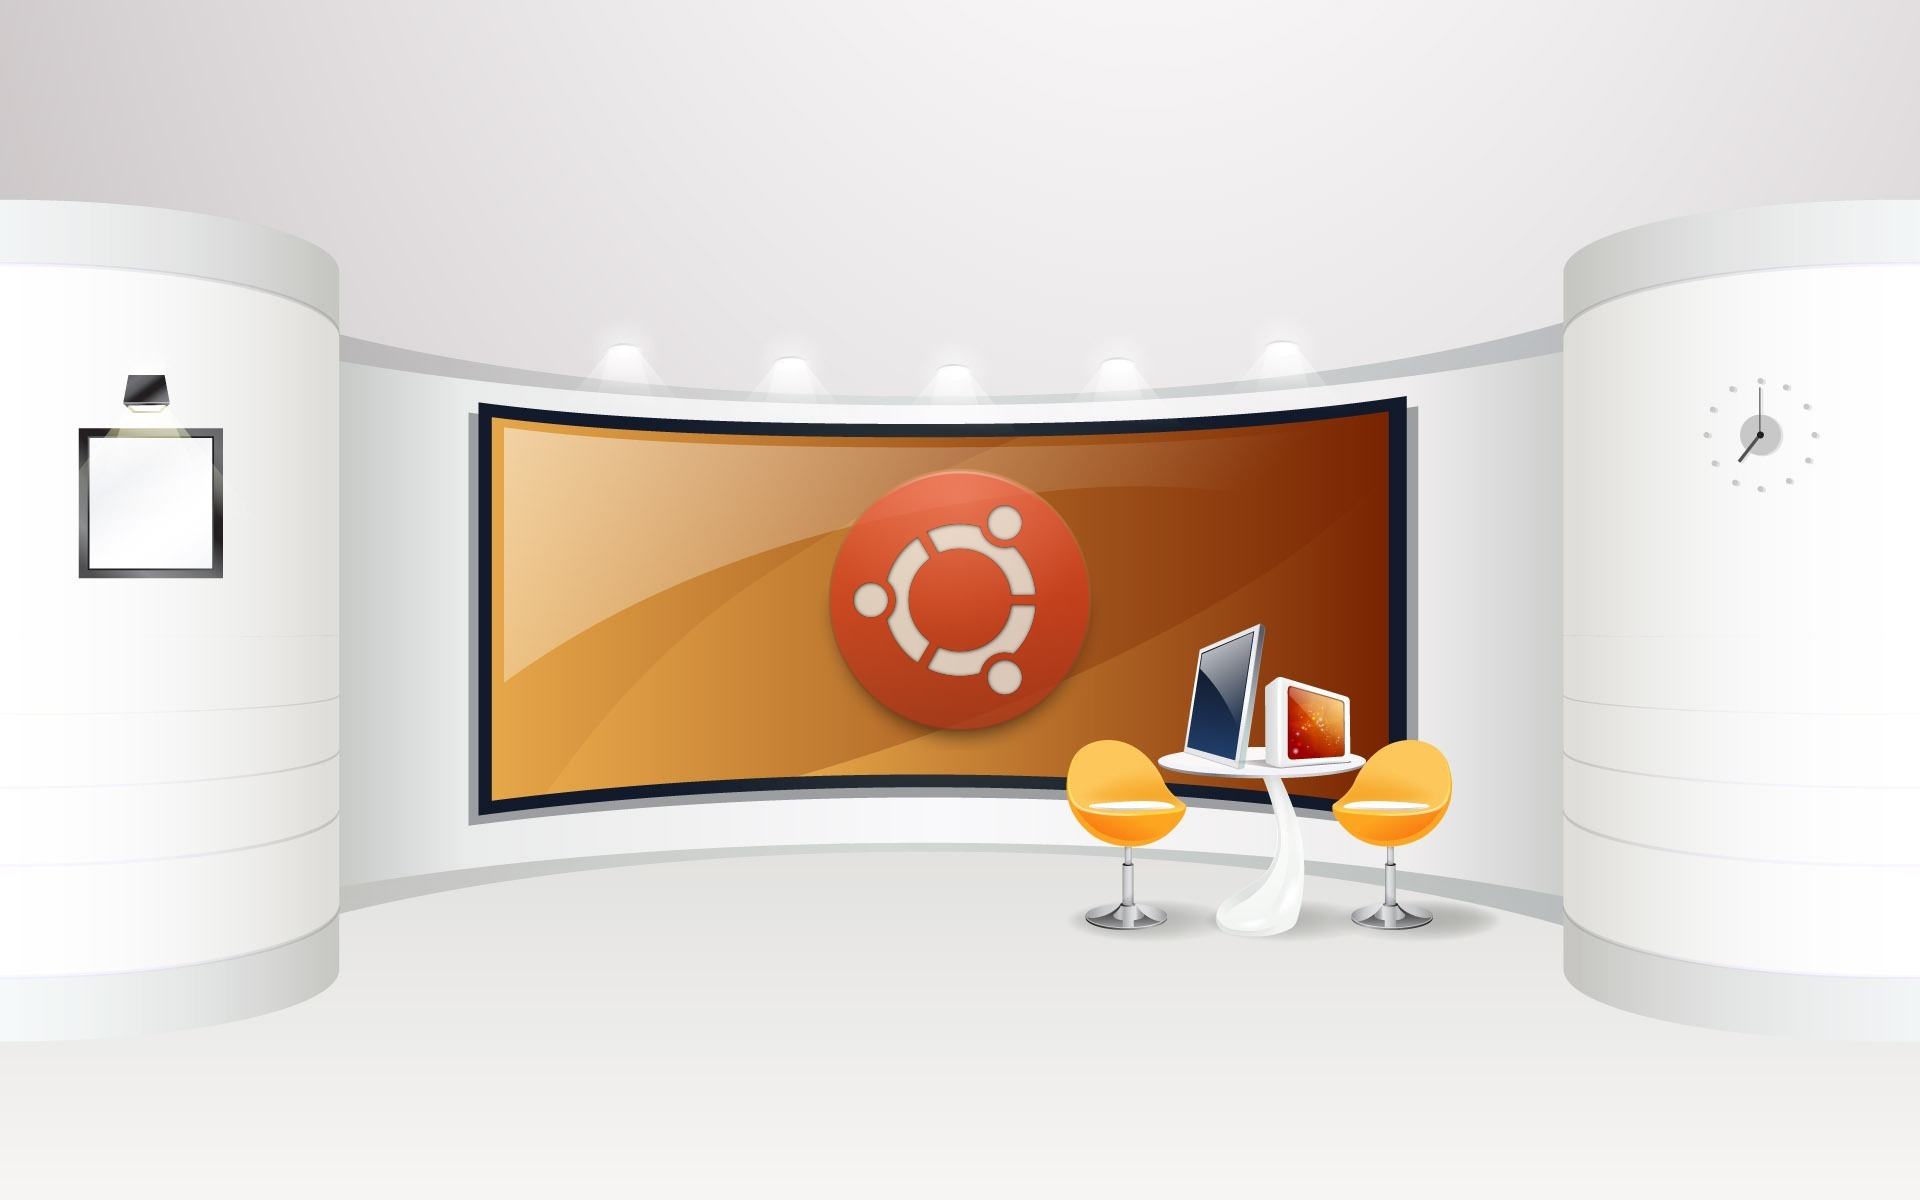 Ubuntu wallpaper home theater zon saja for Wallpaper home theater